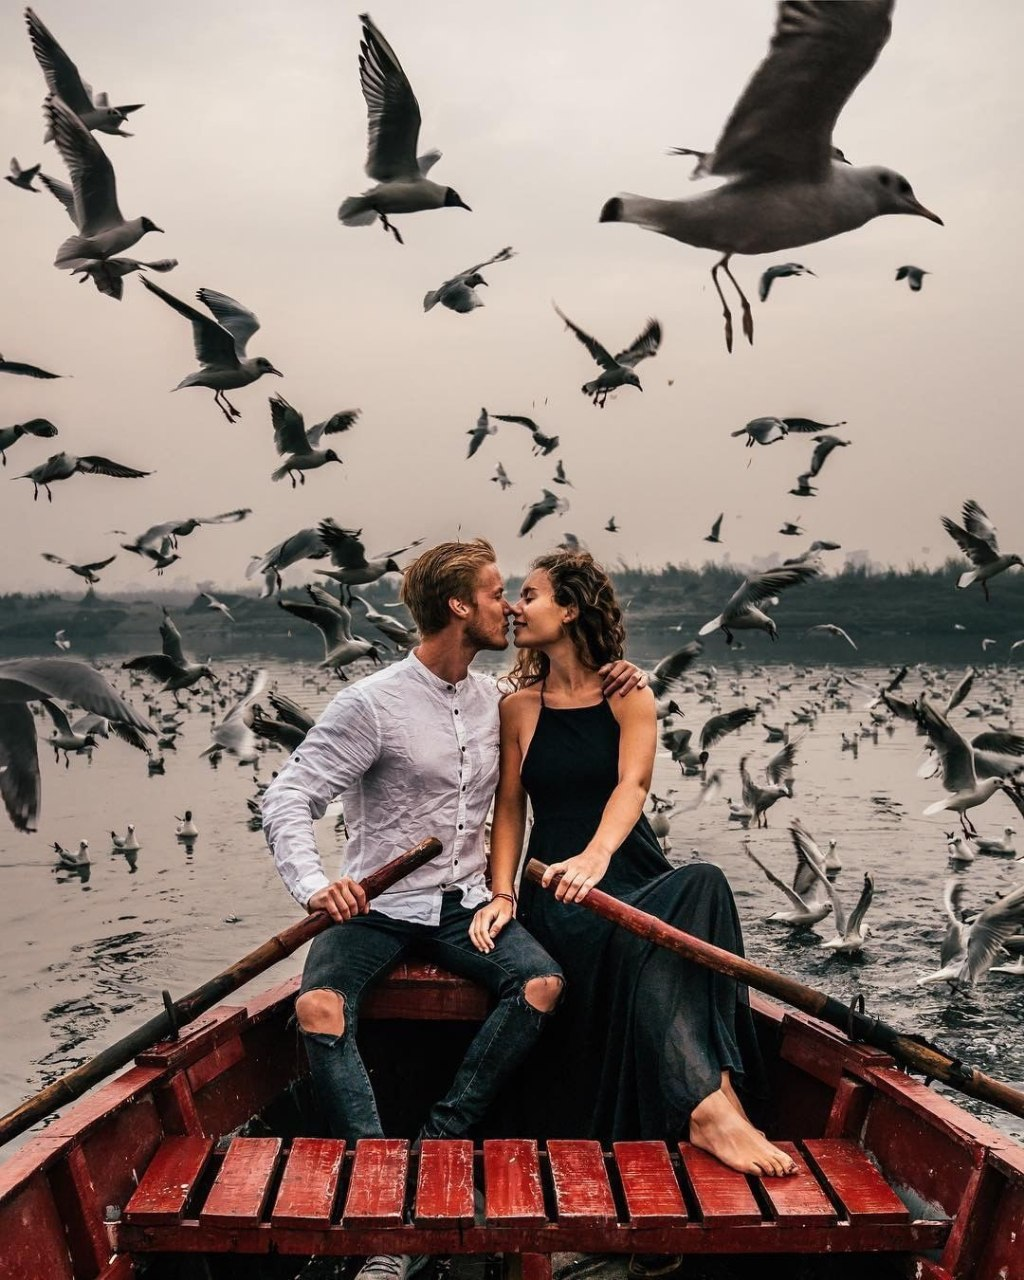 cute couple images for whatsapp dp in hd